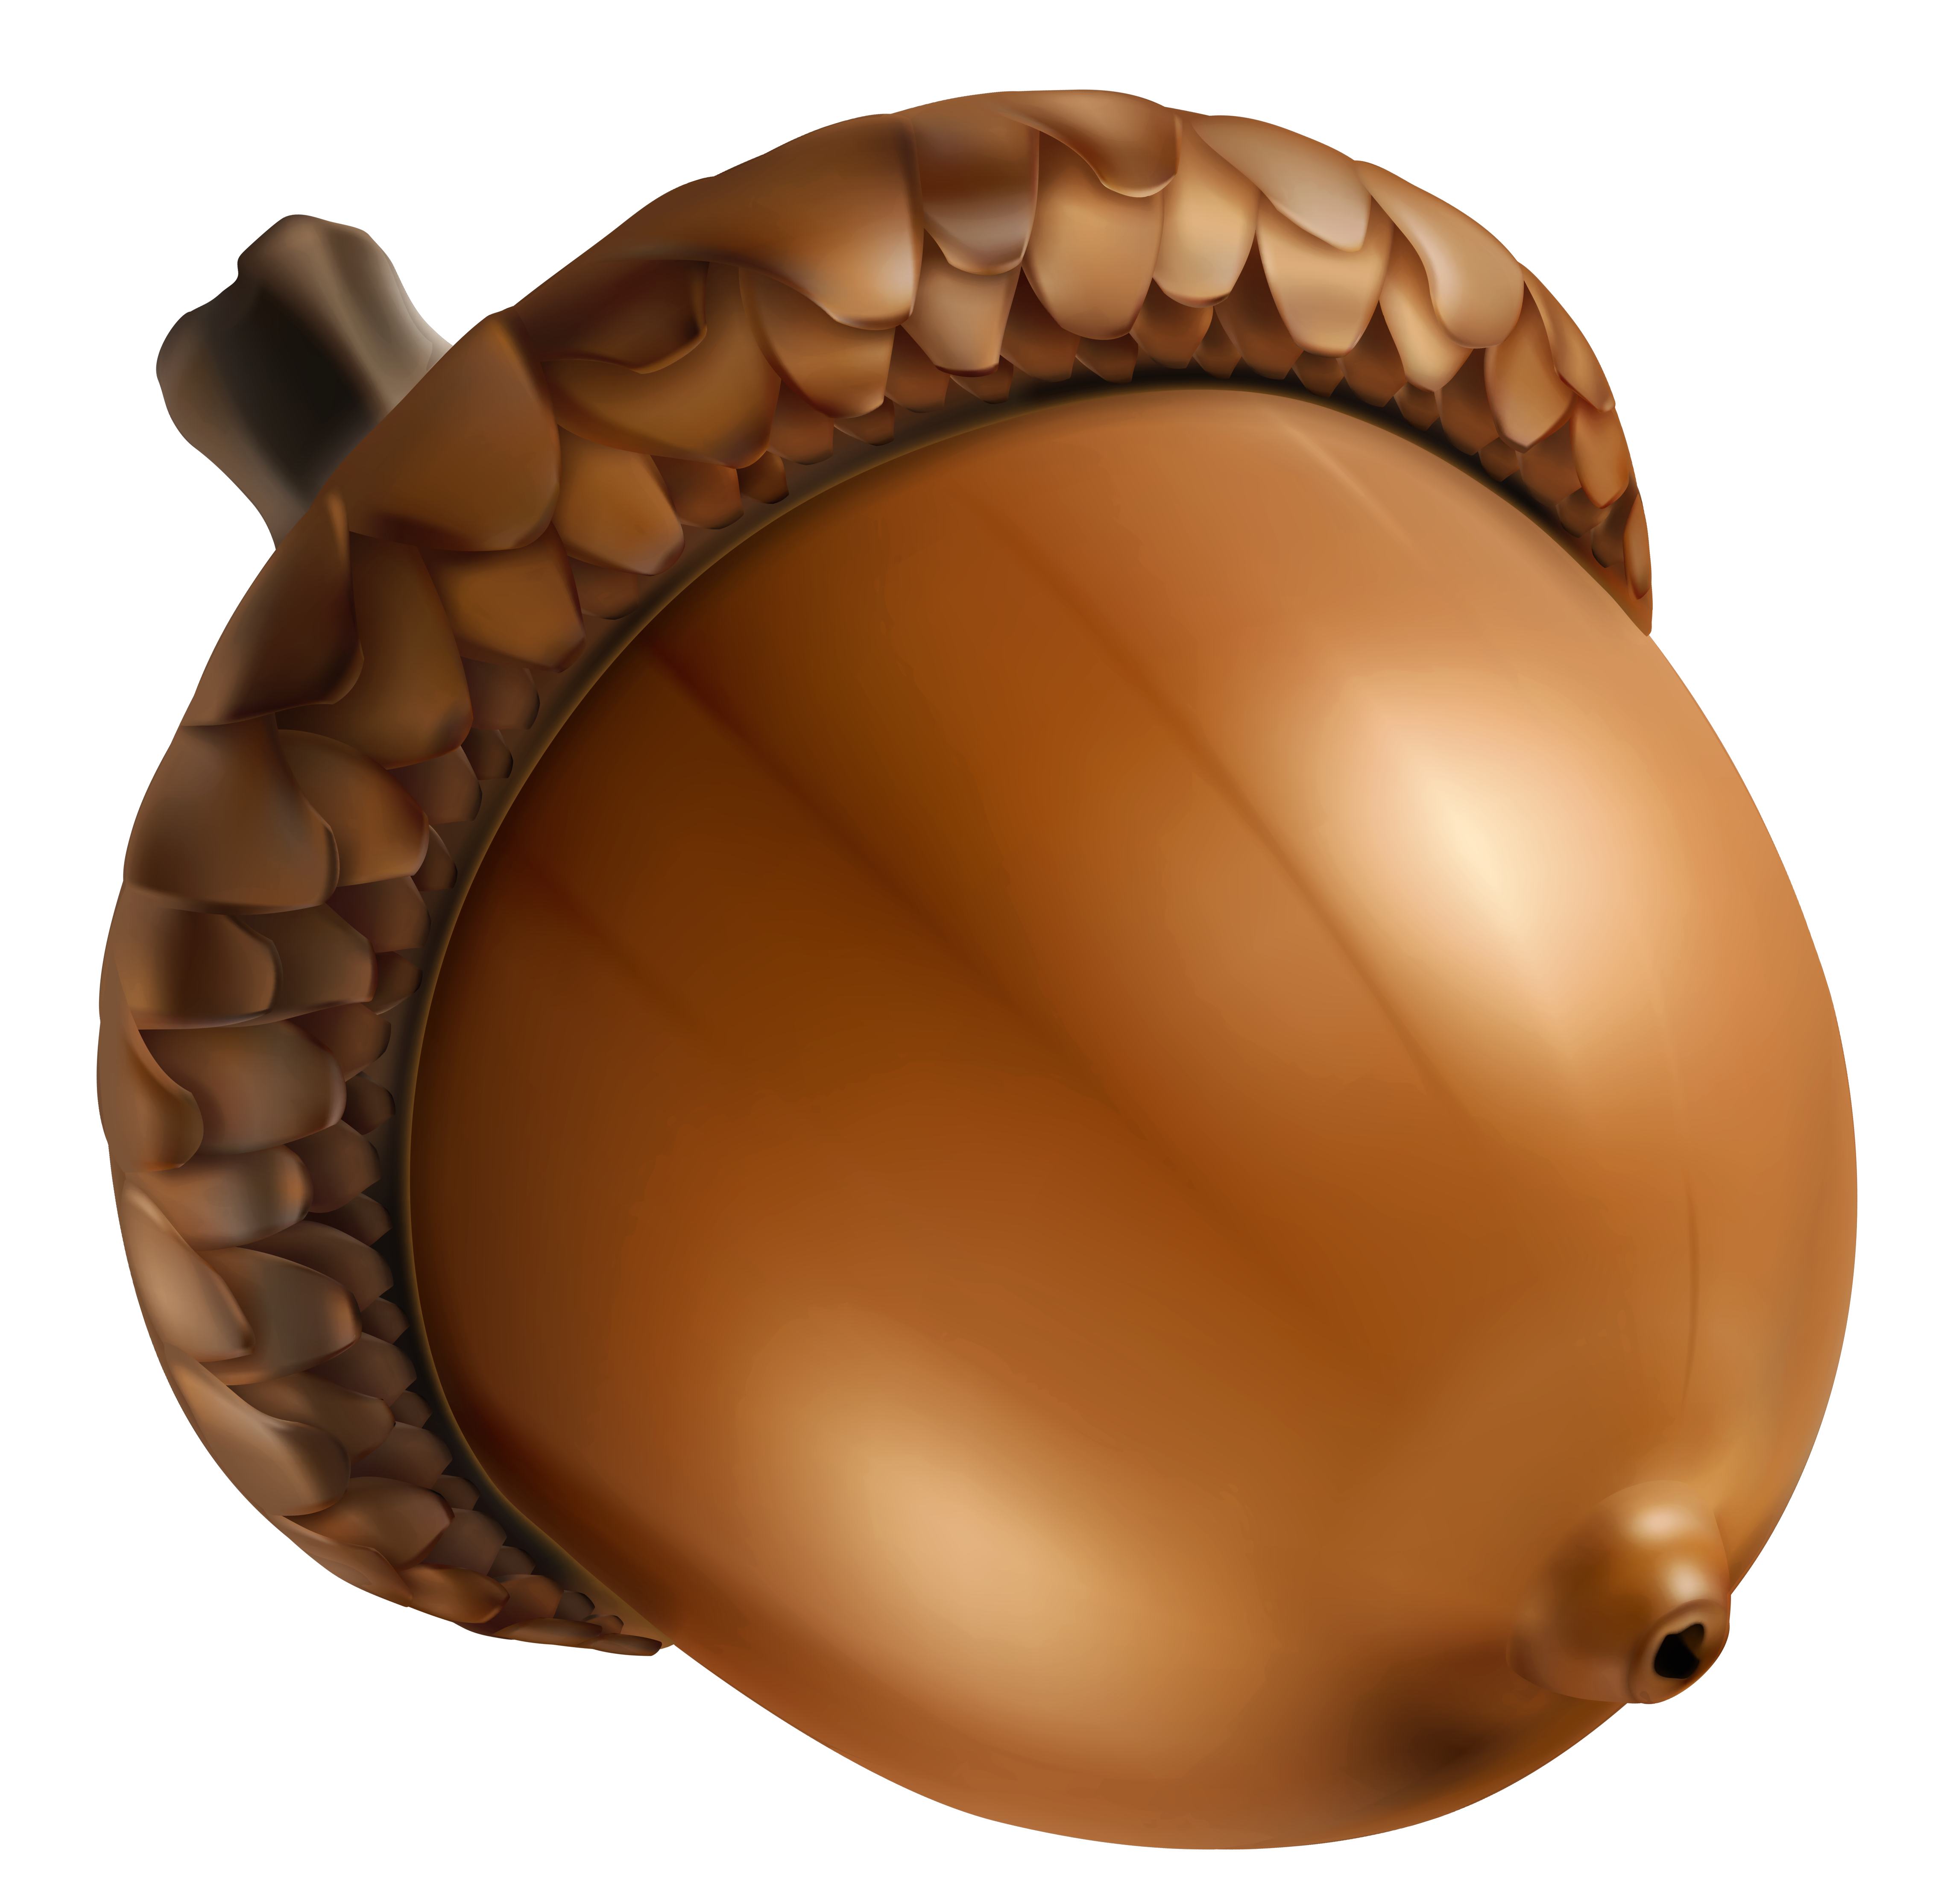 Acorn png image gallery. Nut clipart acron